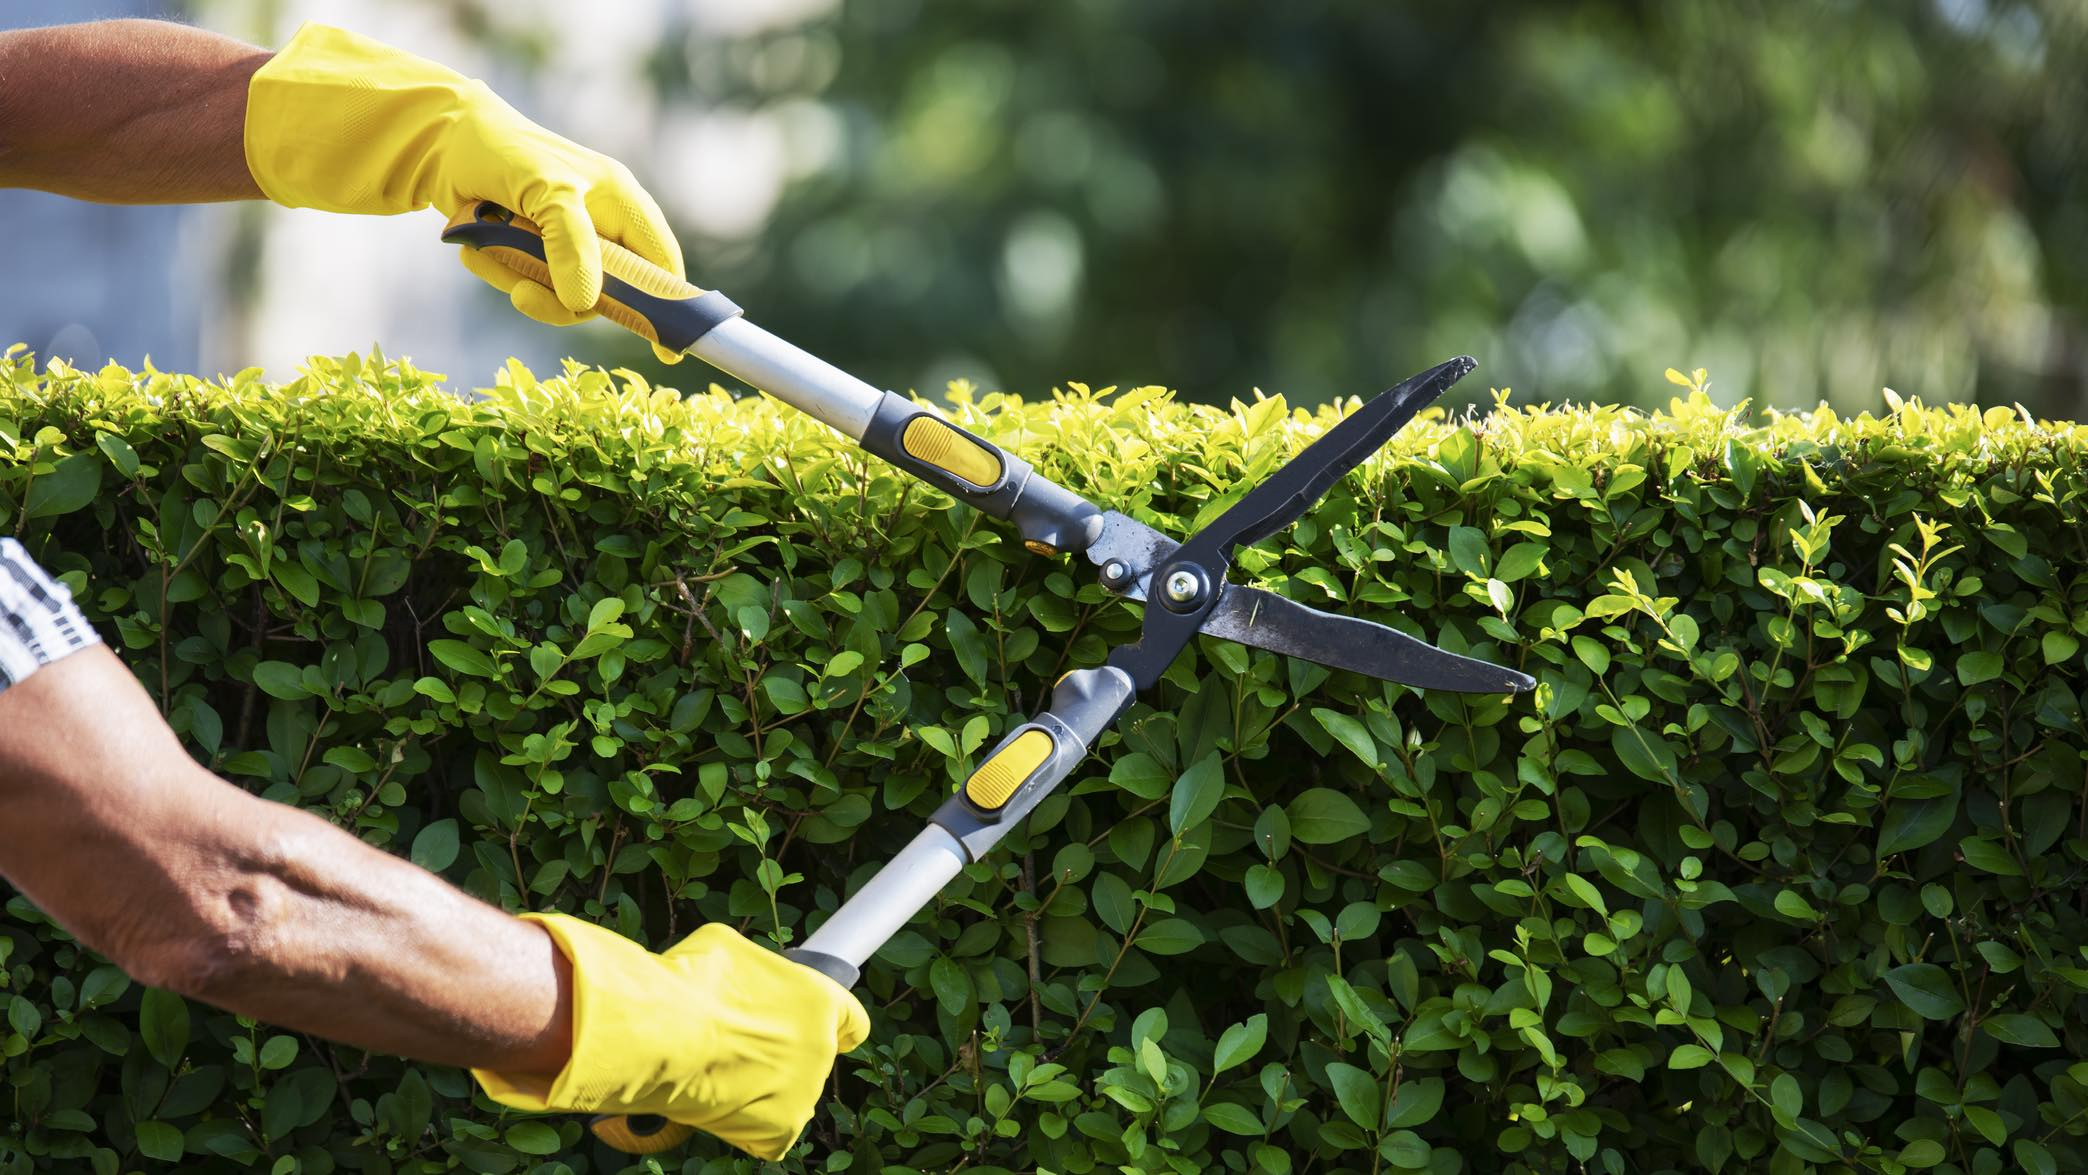 Person wearing gloves using shears to cut hedge, similar to savings interest rate cuts.